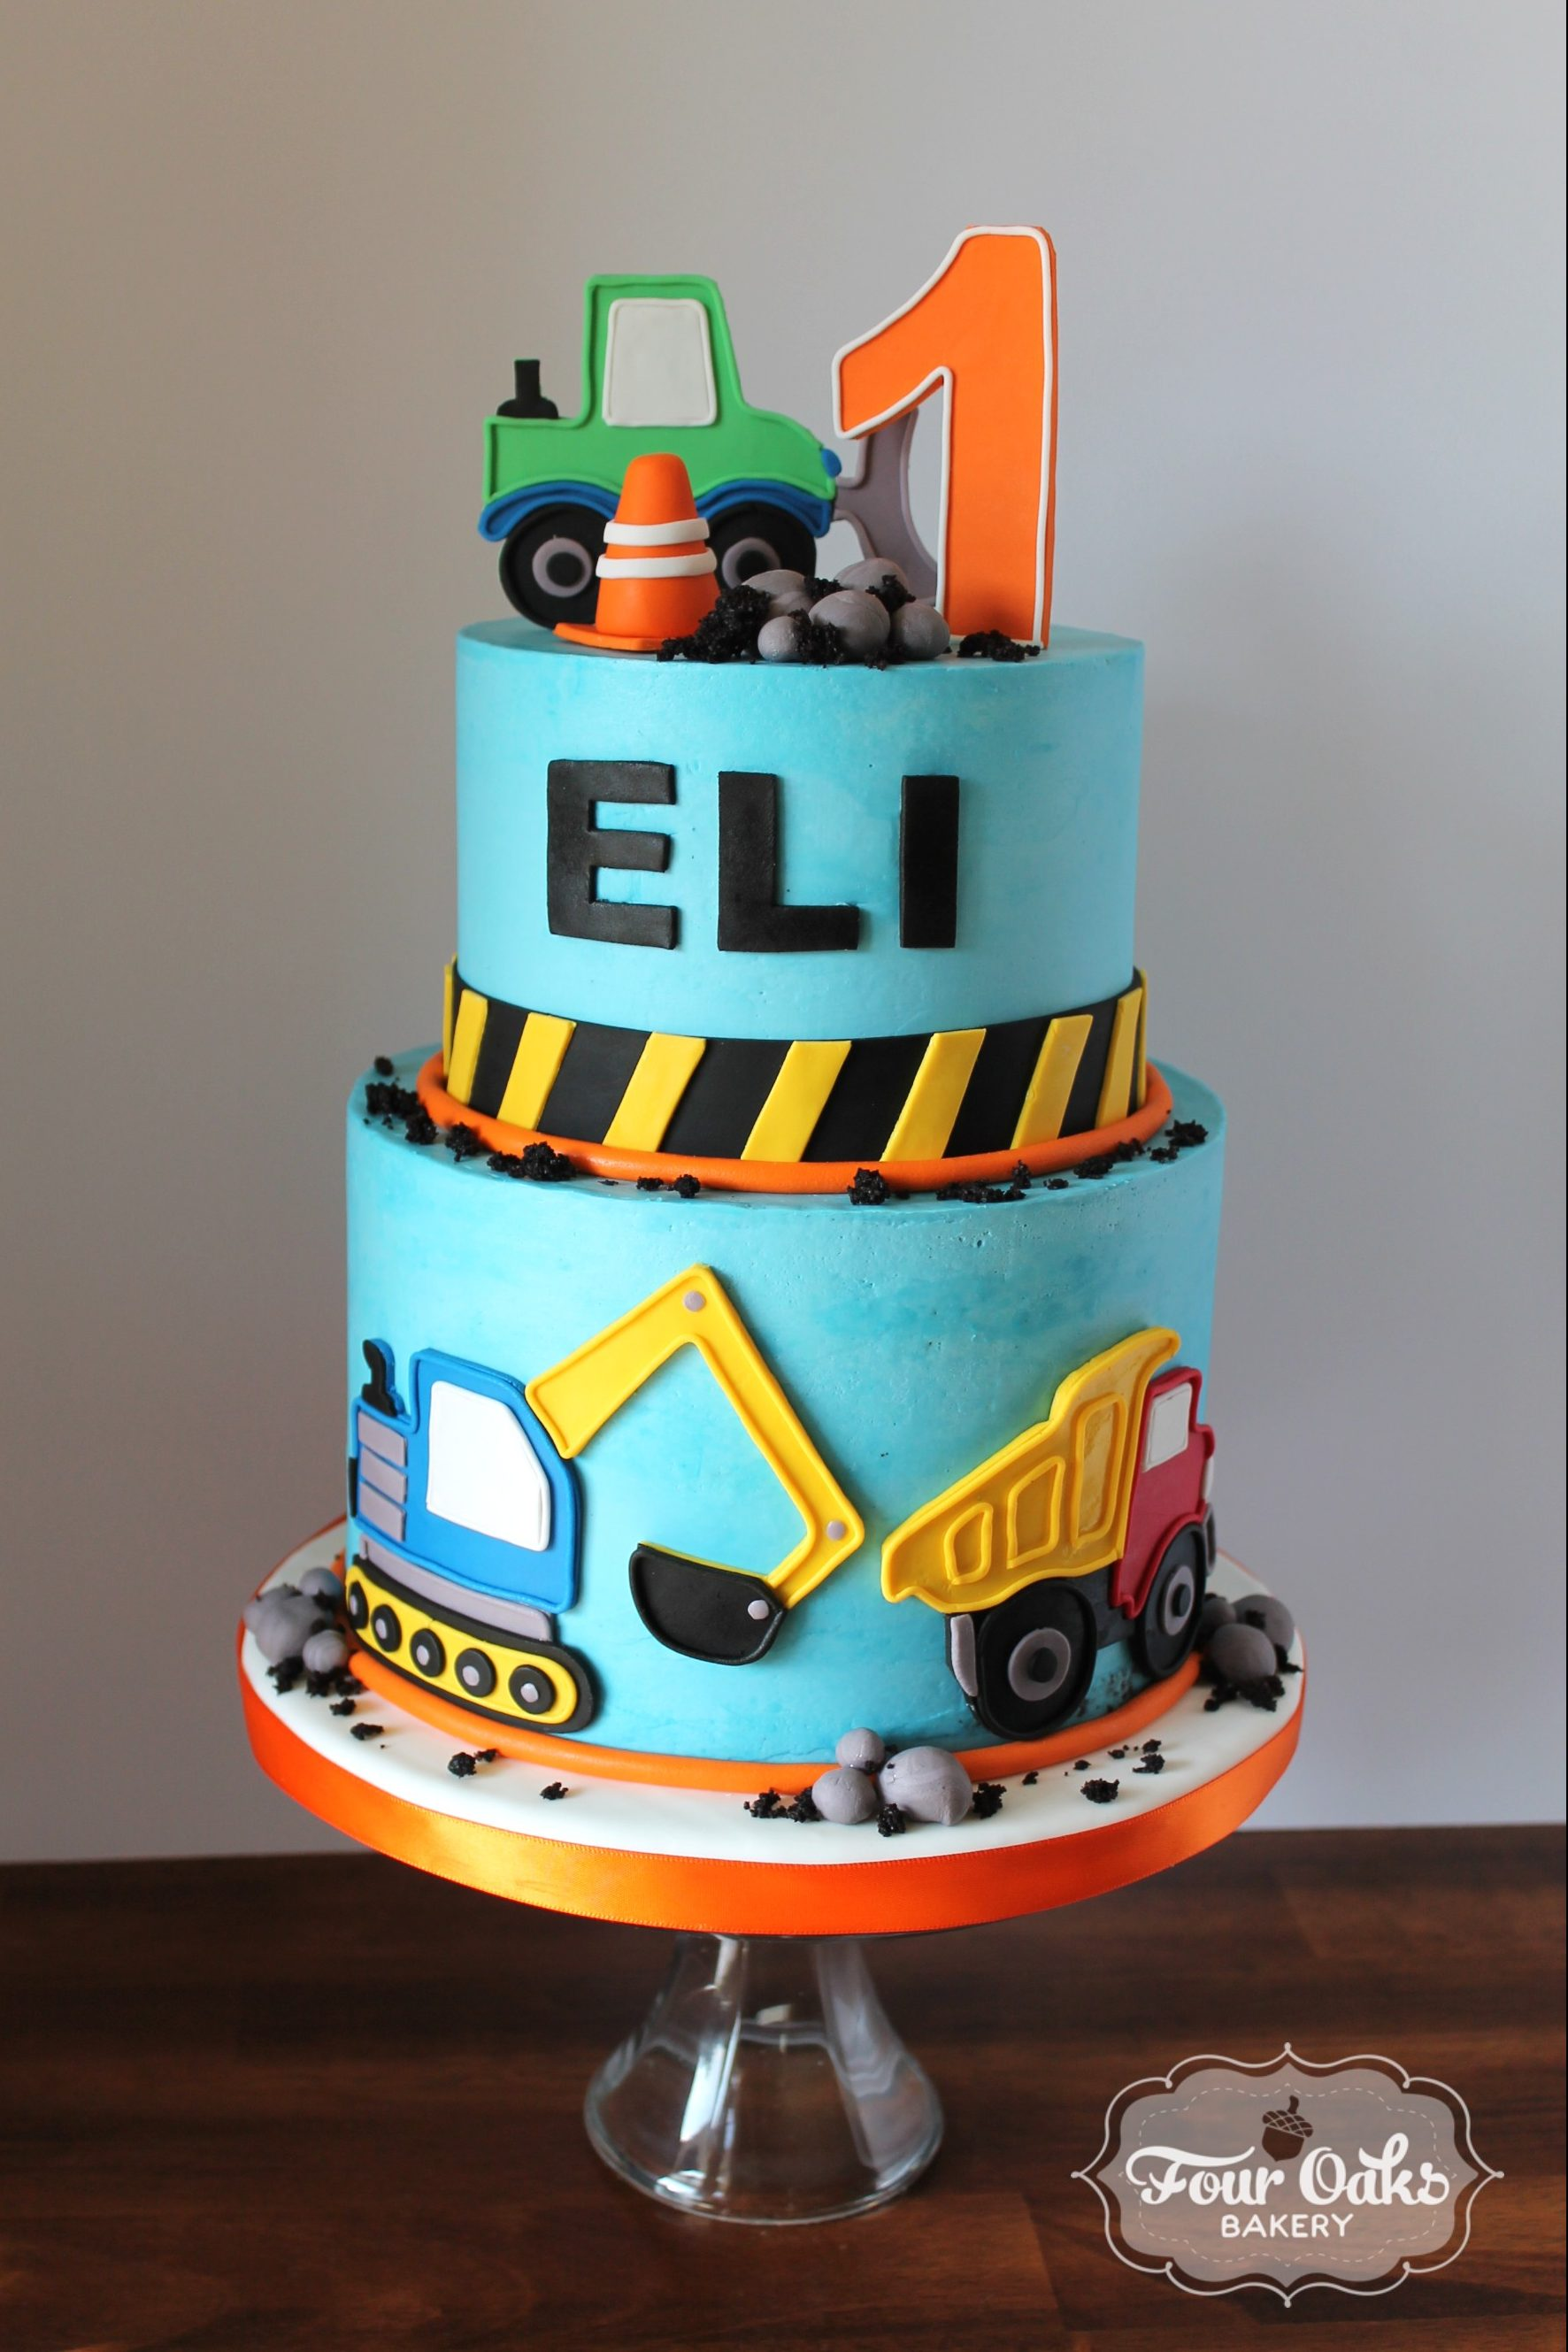 Eli's Construction Themed First Birthday Cake - Four Oaks Bakery